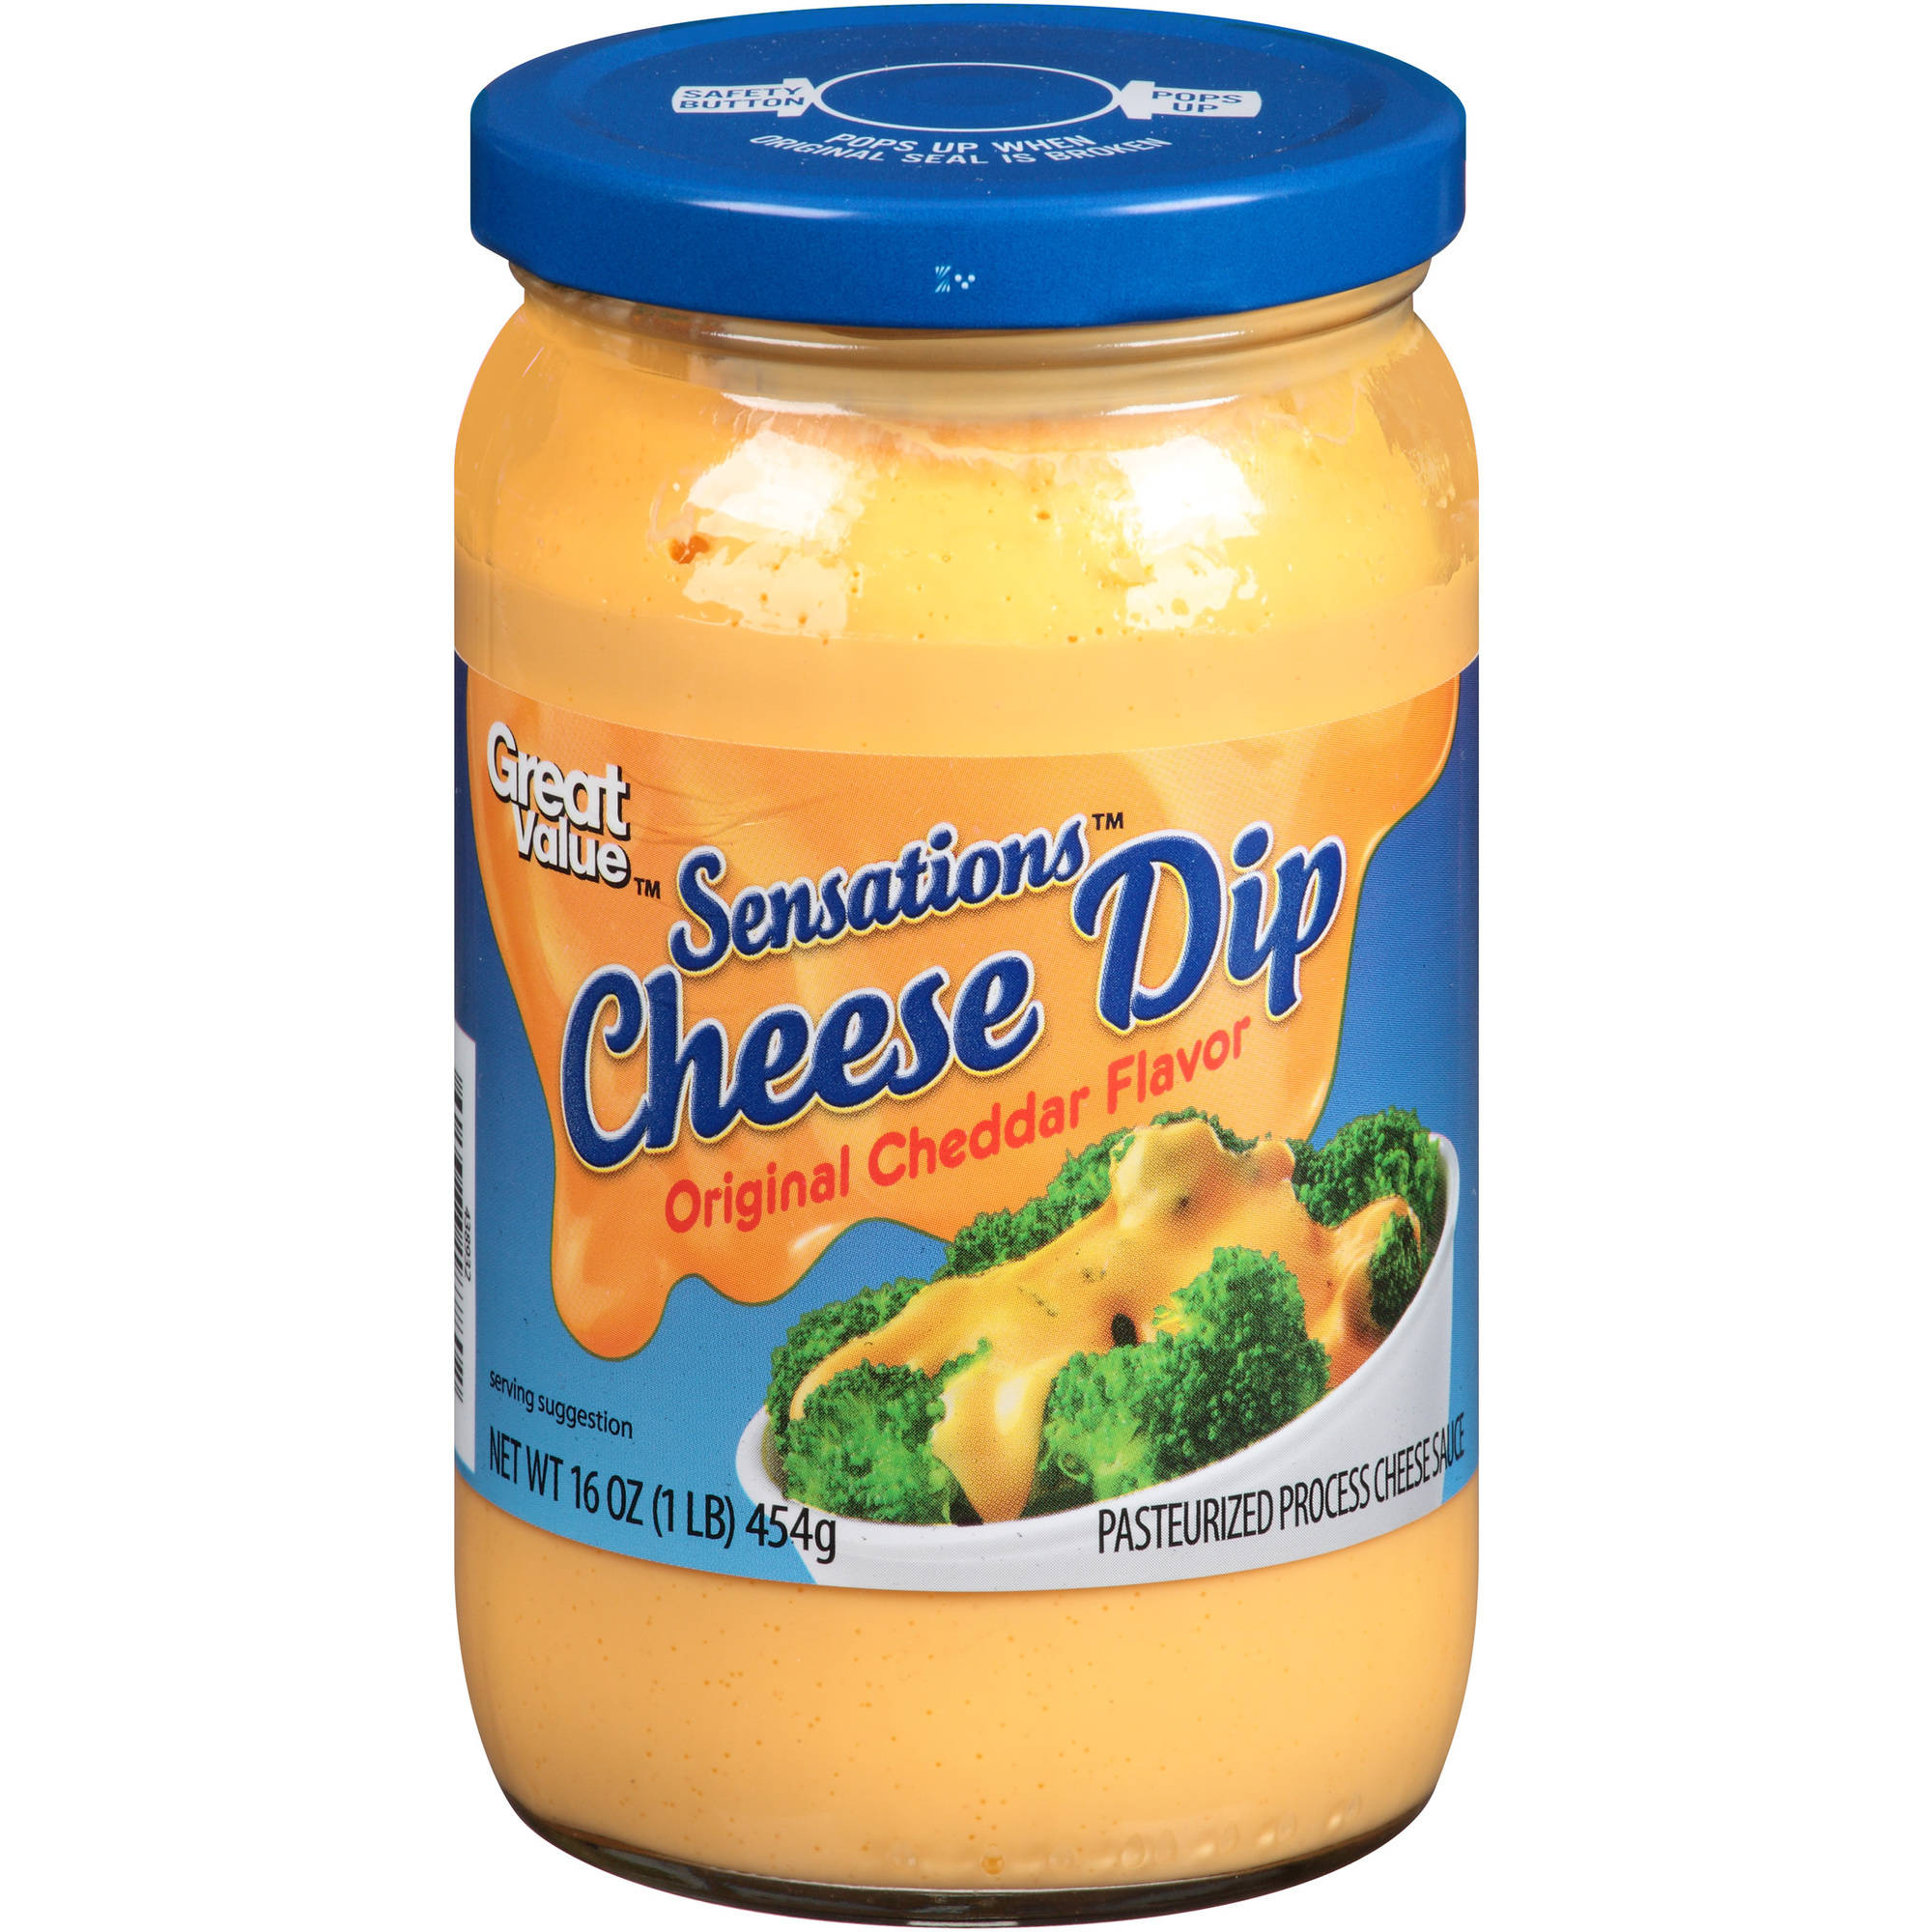 Great Value Sensations Original Cheddar Cheese Dip, 16 oz